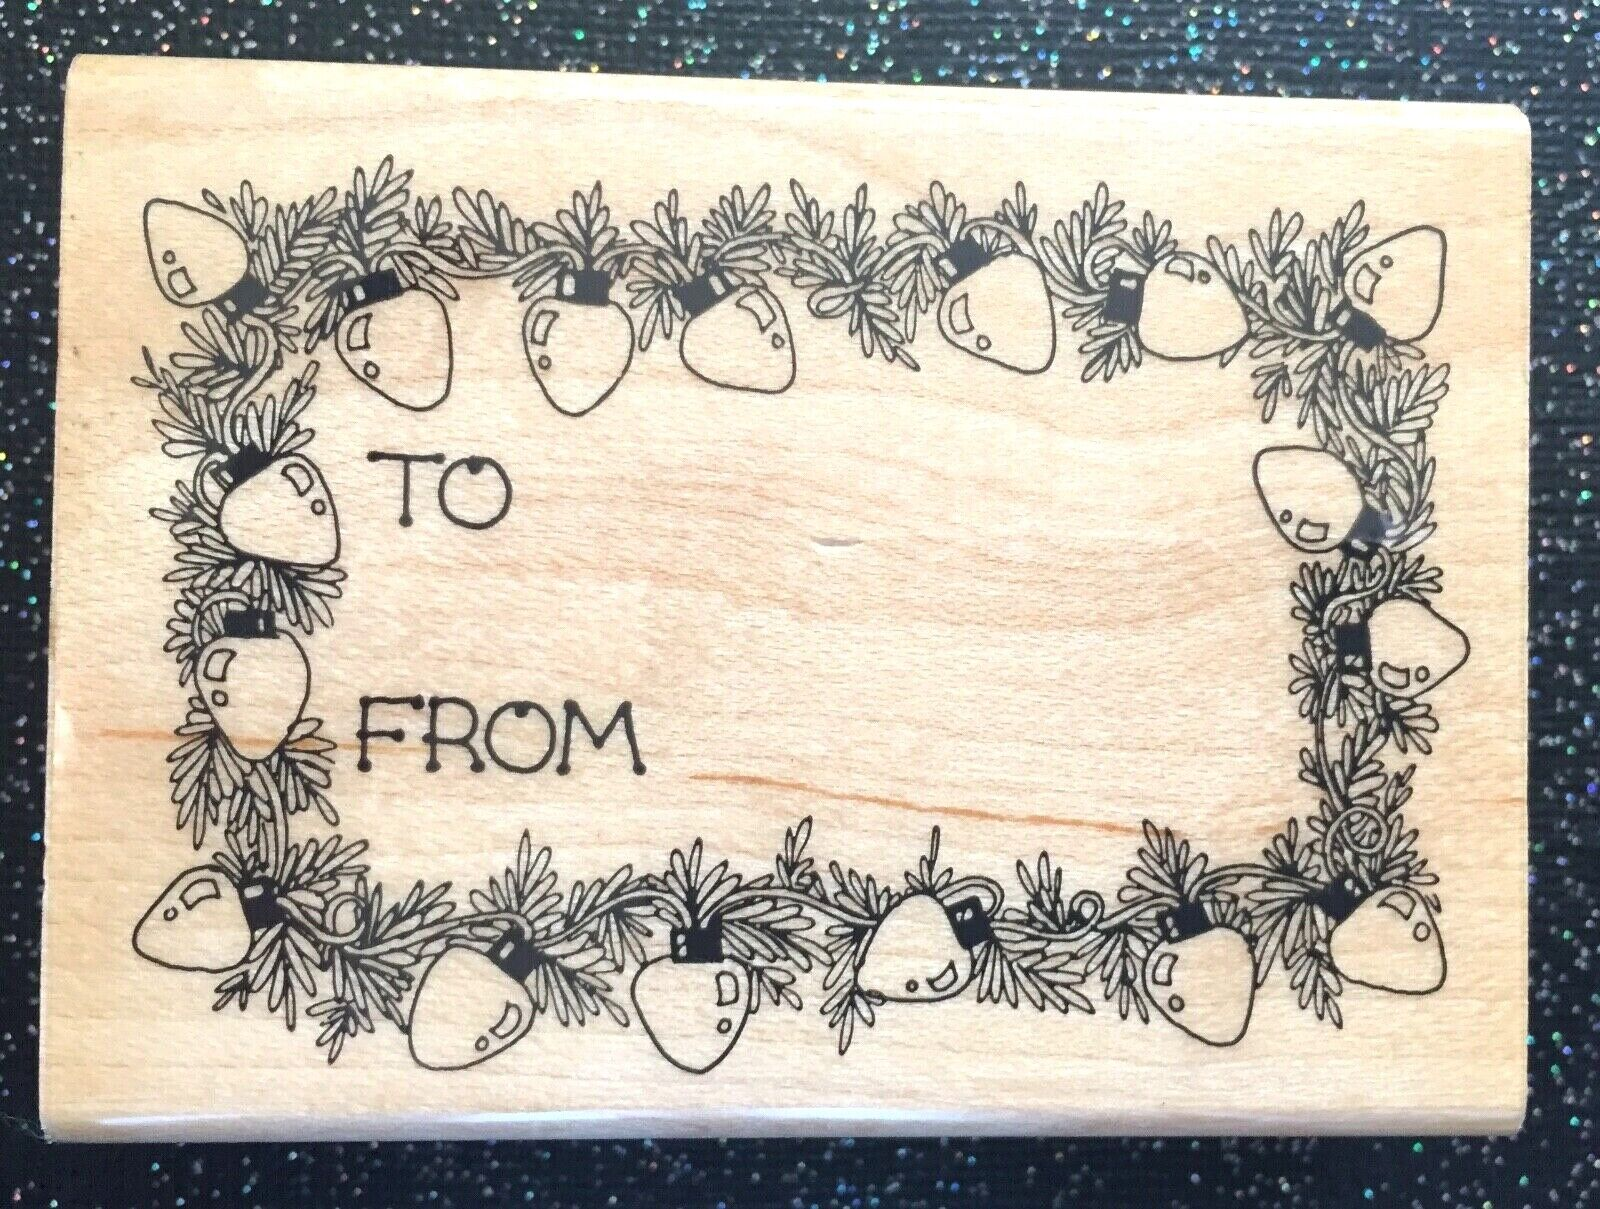 Vintage Rubber Stamp Christmas Light Gift Tag By Hero Arts 2 1/2 X 3 1/4  - $5.75